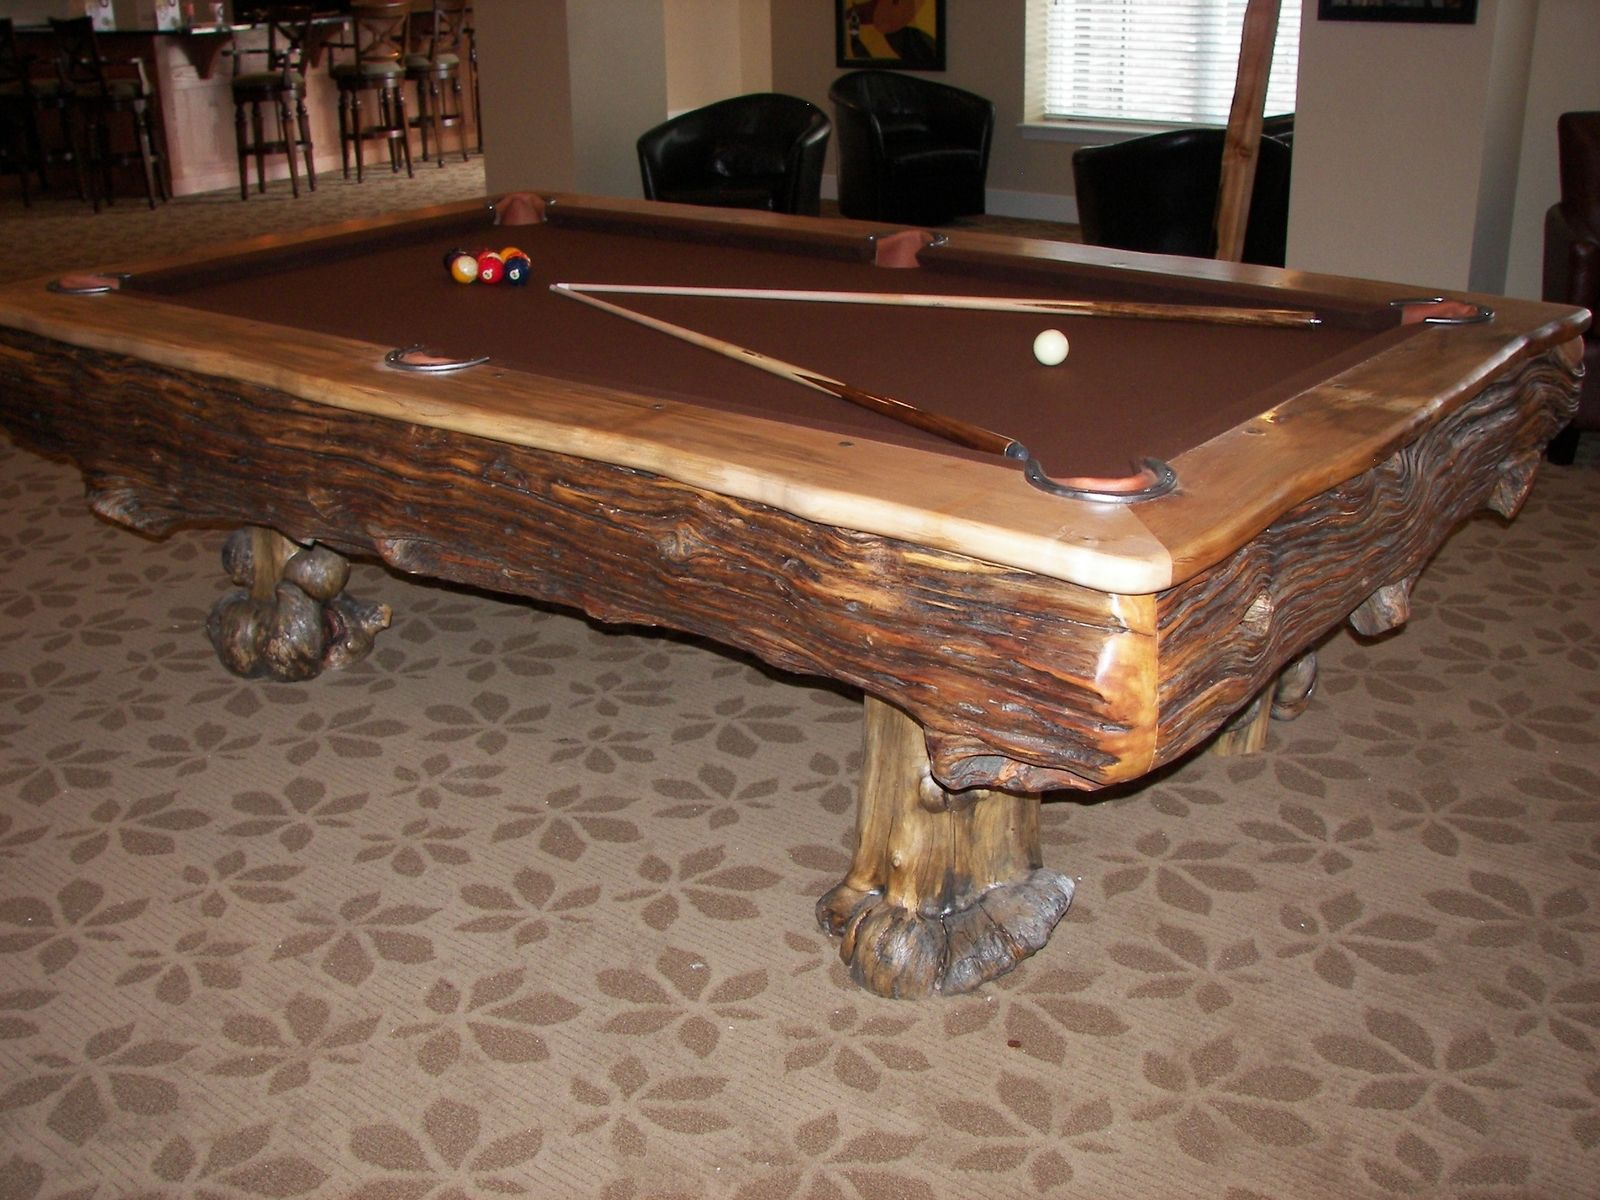 Vaal Pool Table. With its fringe pockets and dental work